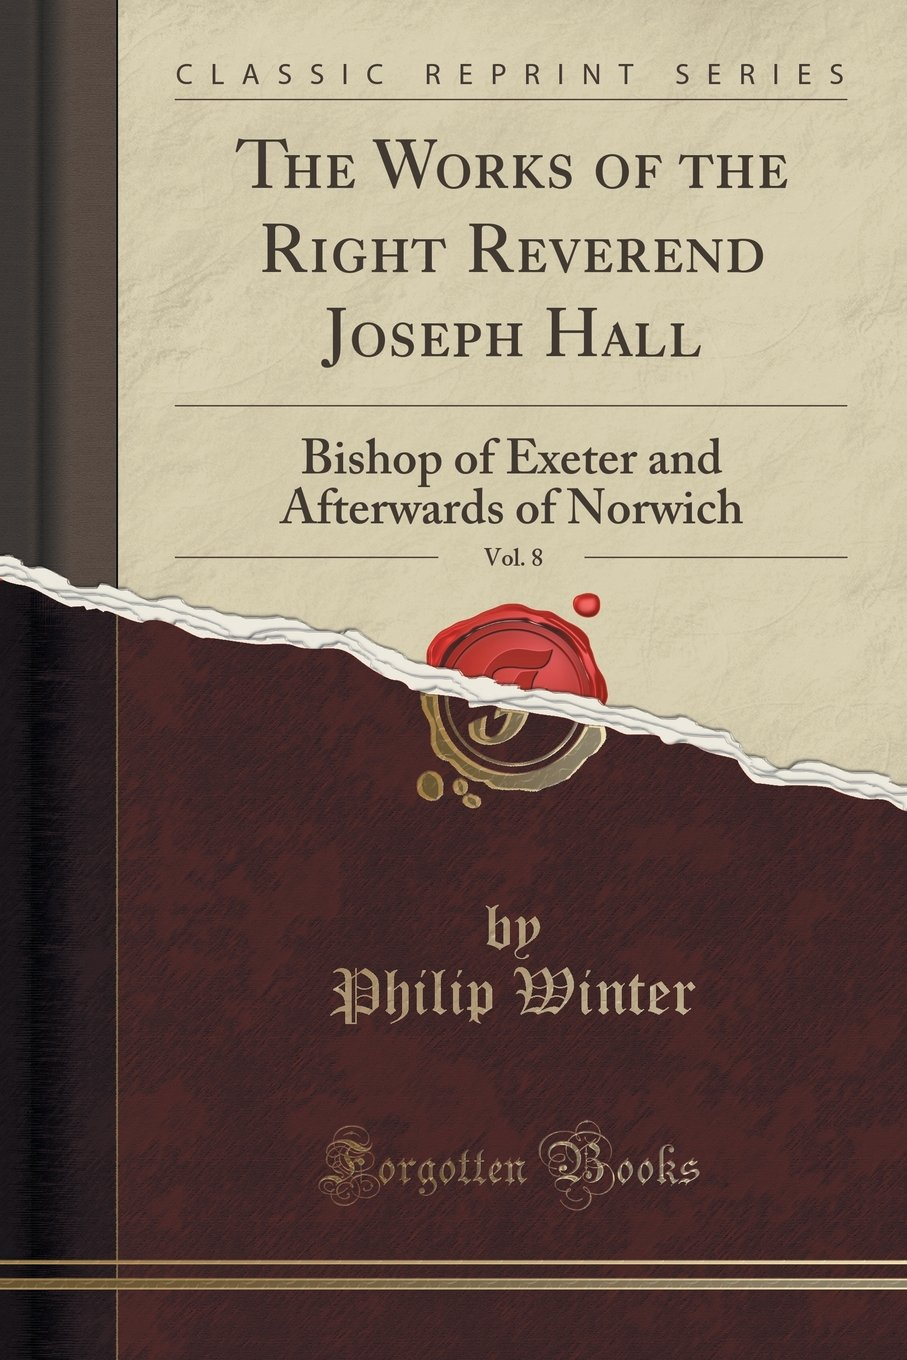 The Works of the Right Reverend Joseph Hall, Vol. 8: Bishop of Exeter and Afterwards of Norwich (Classic Reprint) pdf